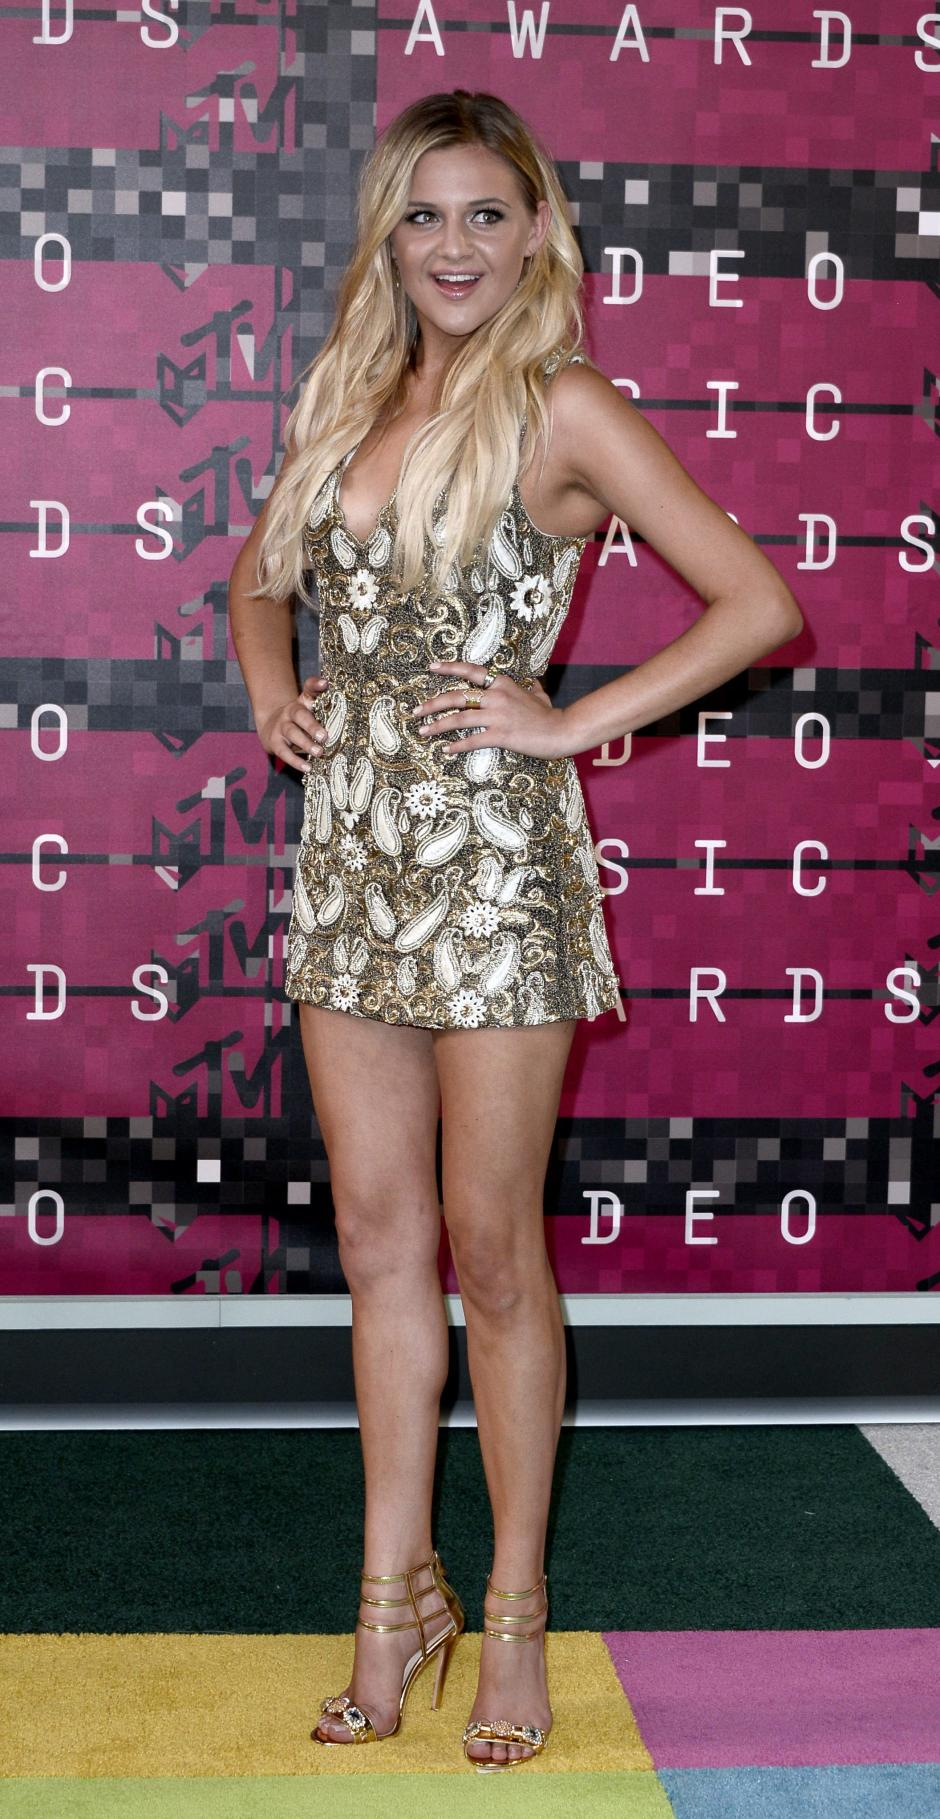 La cantante de country Kelsea Ballerini llega en la alfombra roja de la 32 MTV Video Music Awards 2015. (Foto: EFE/Paul Buck)